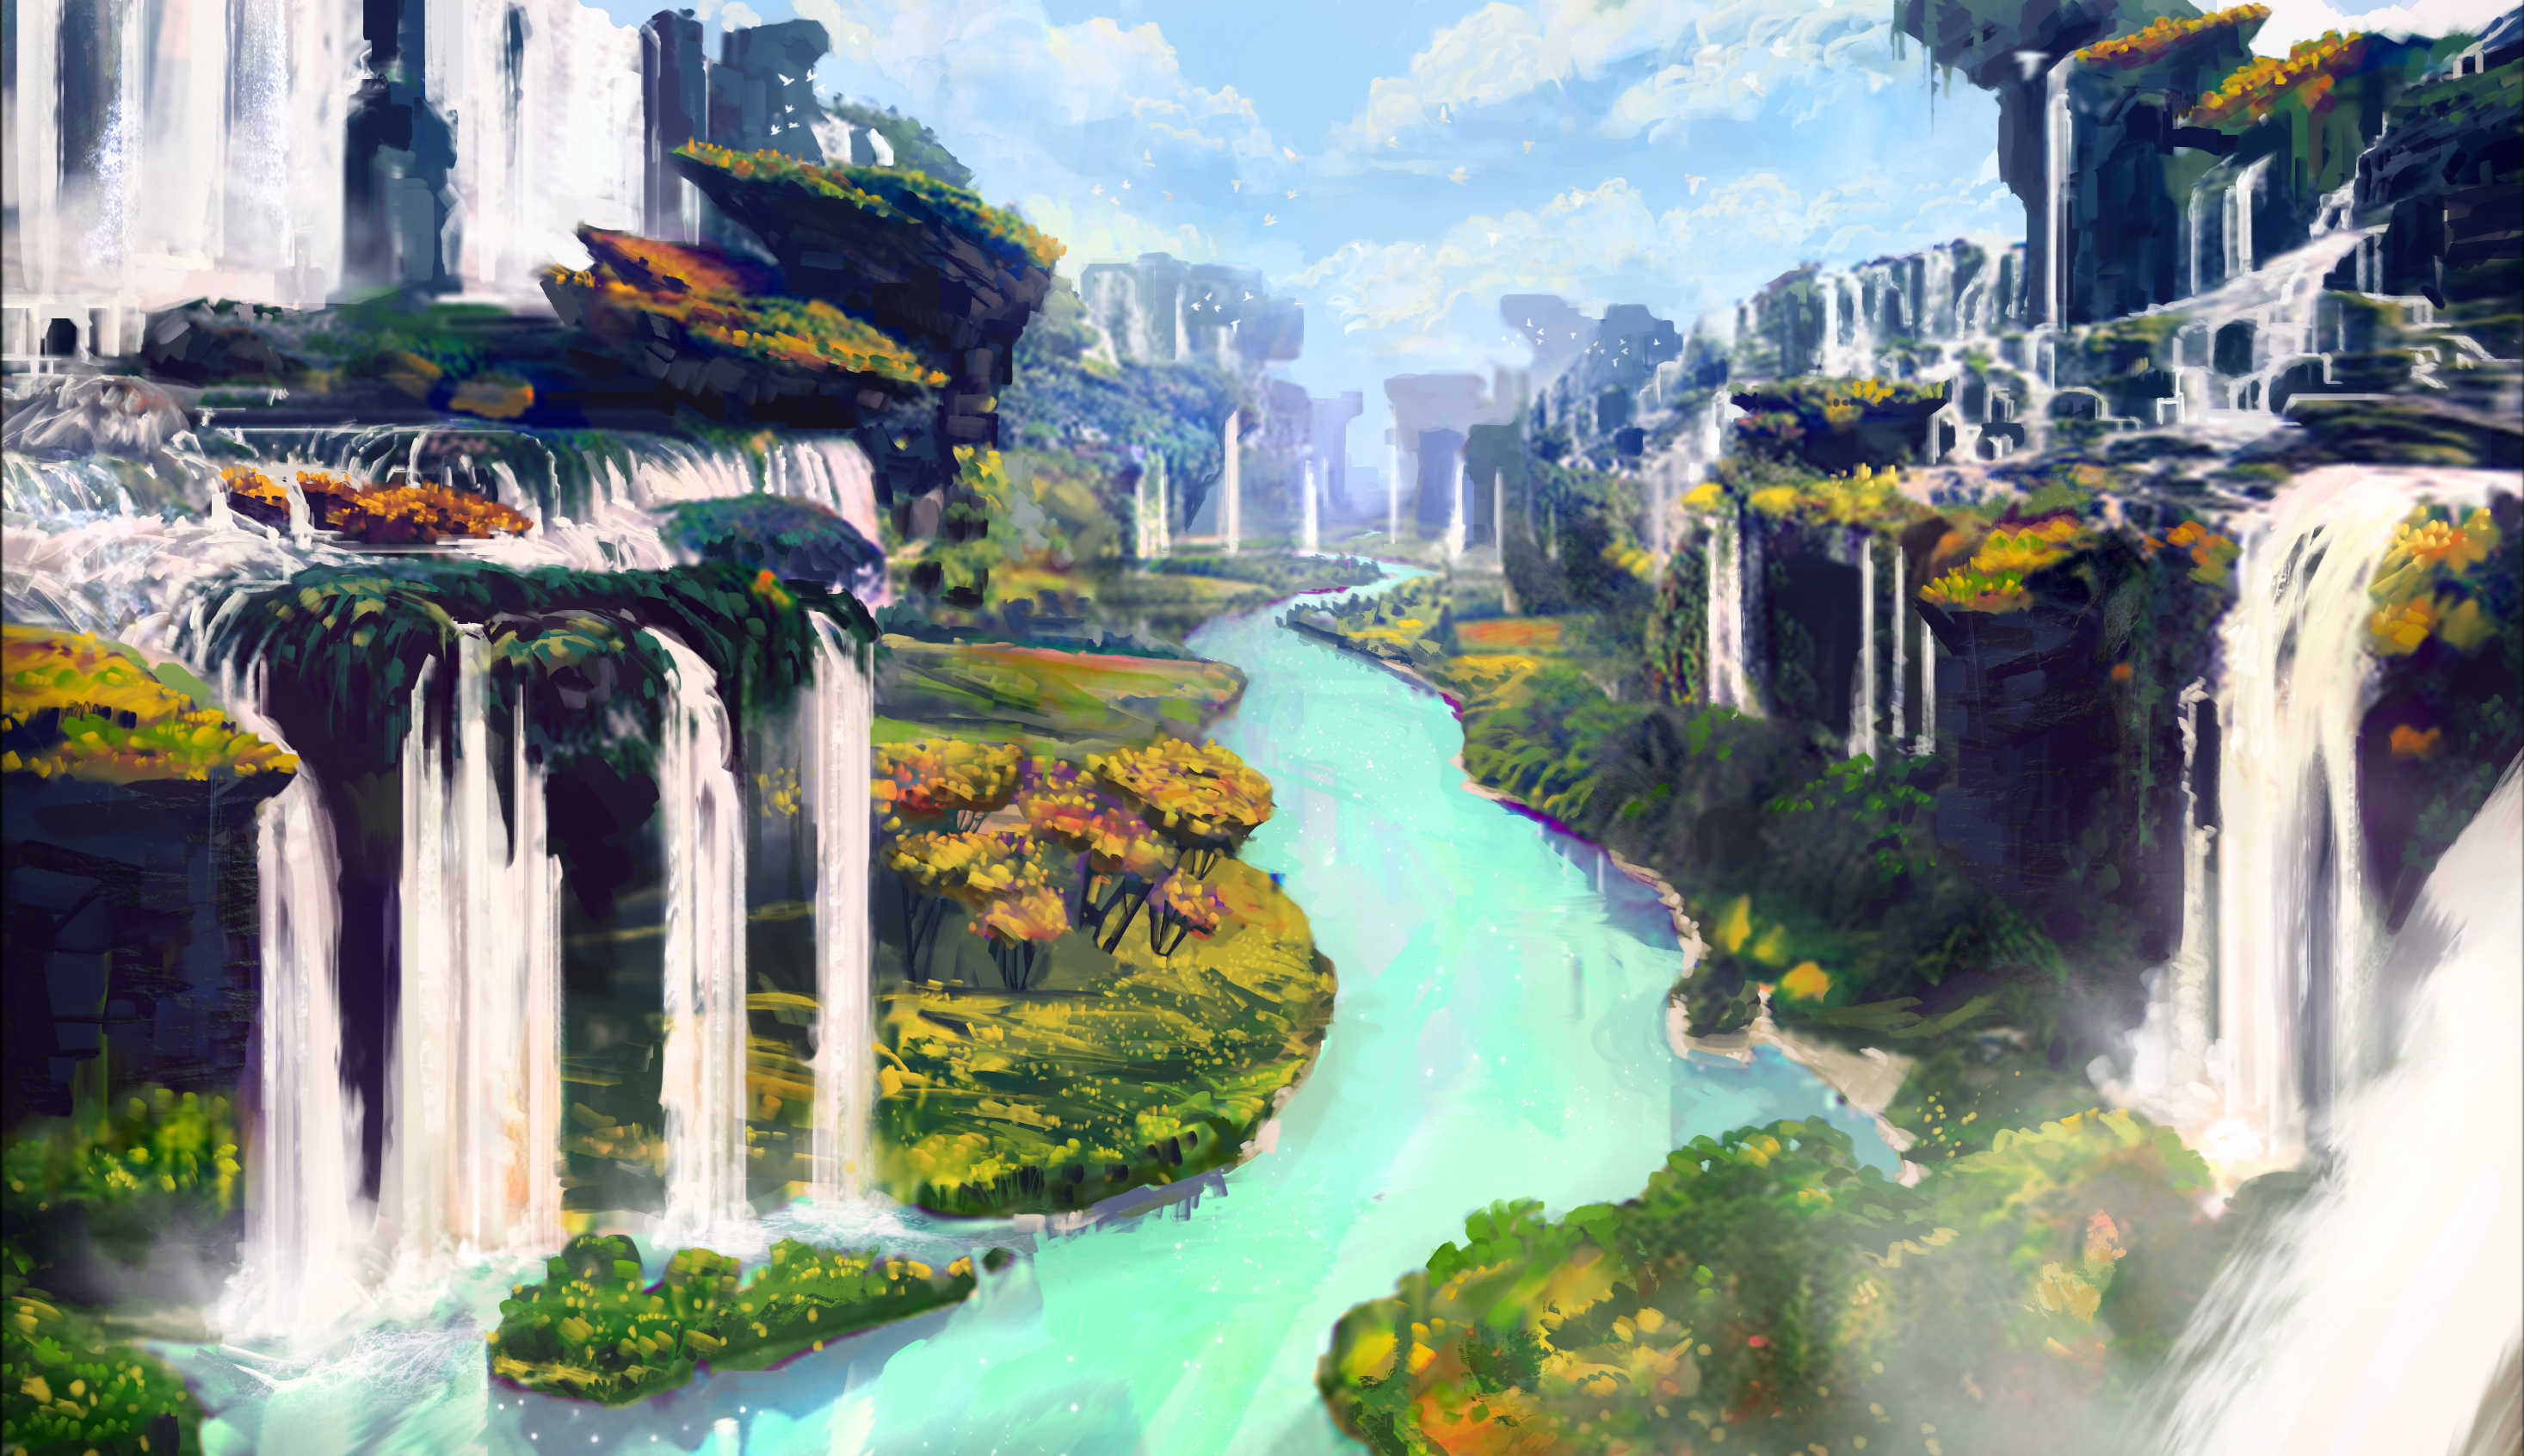 Obsidian Falls in Vanguard V